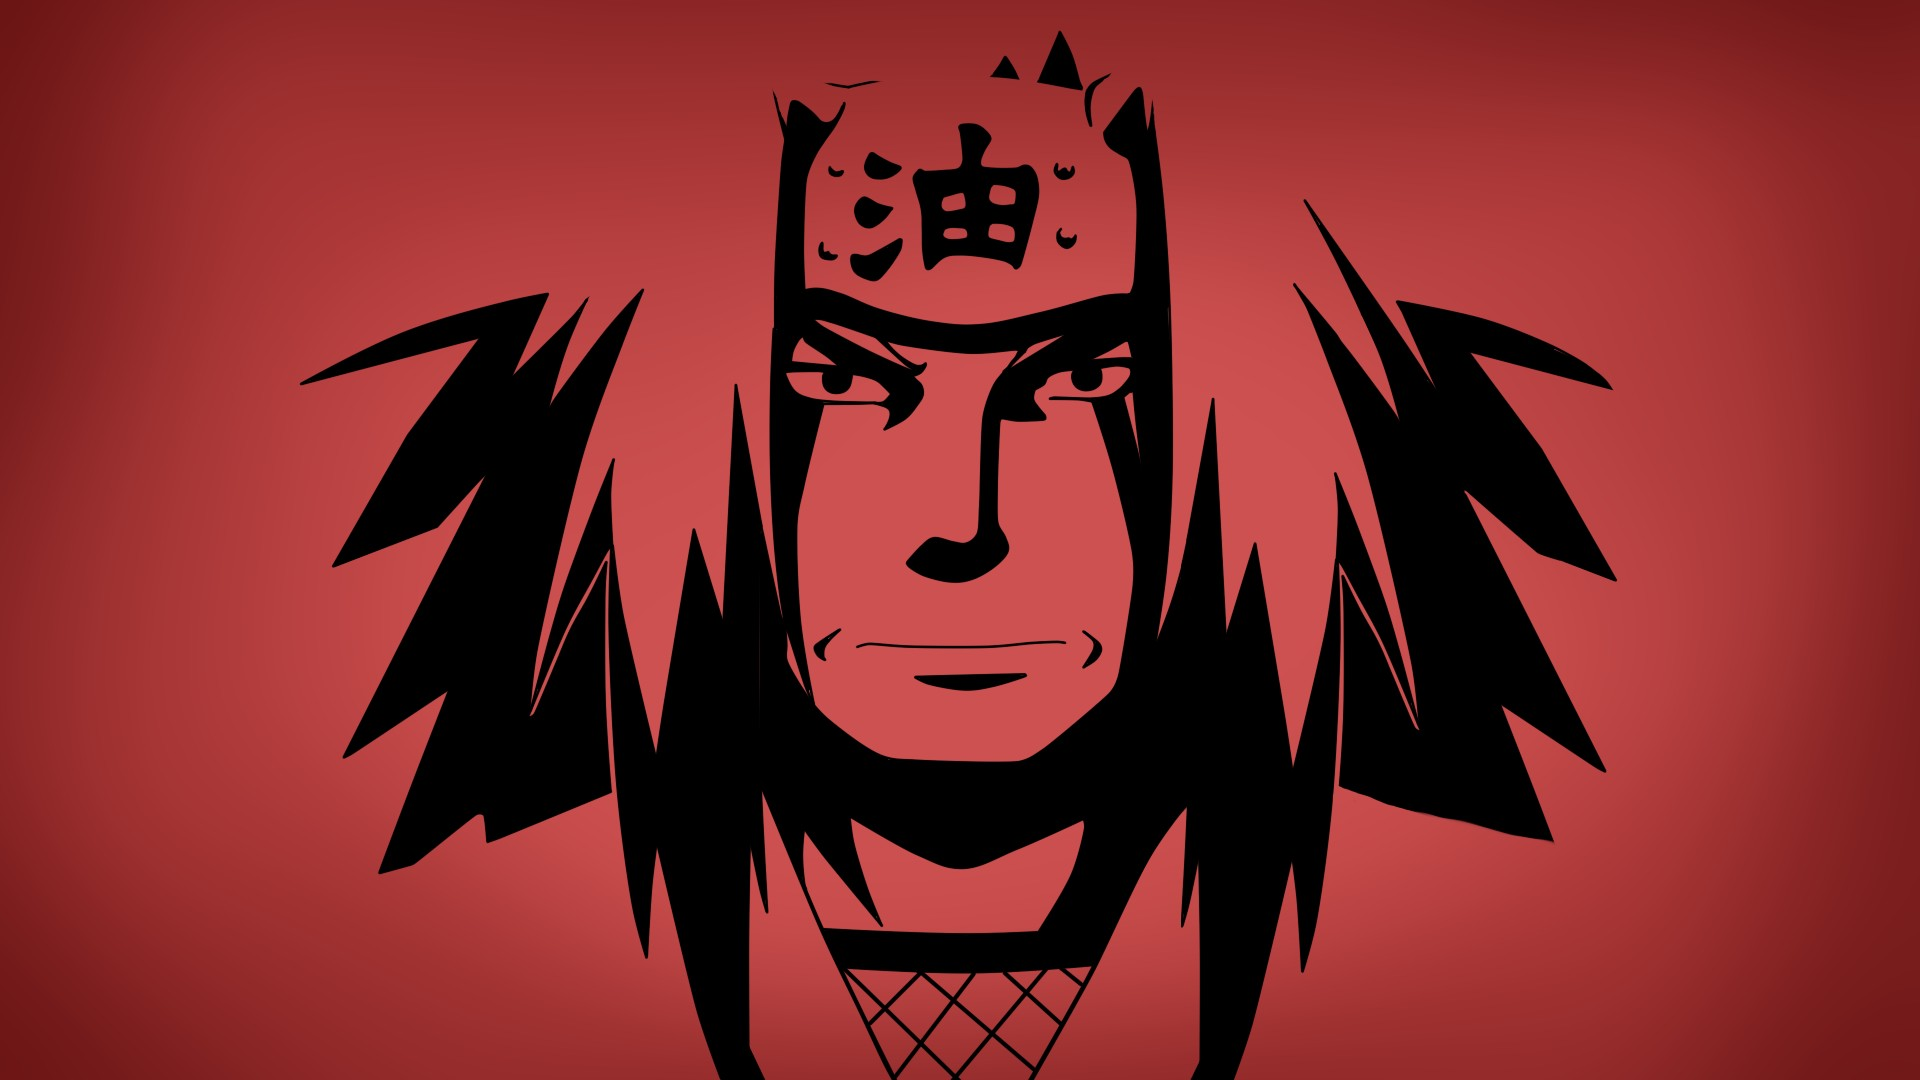 All Car Hd Wallpaper Download Wallpaper 1920x1080 Px Jiraiya Naruto Shippuuden